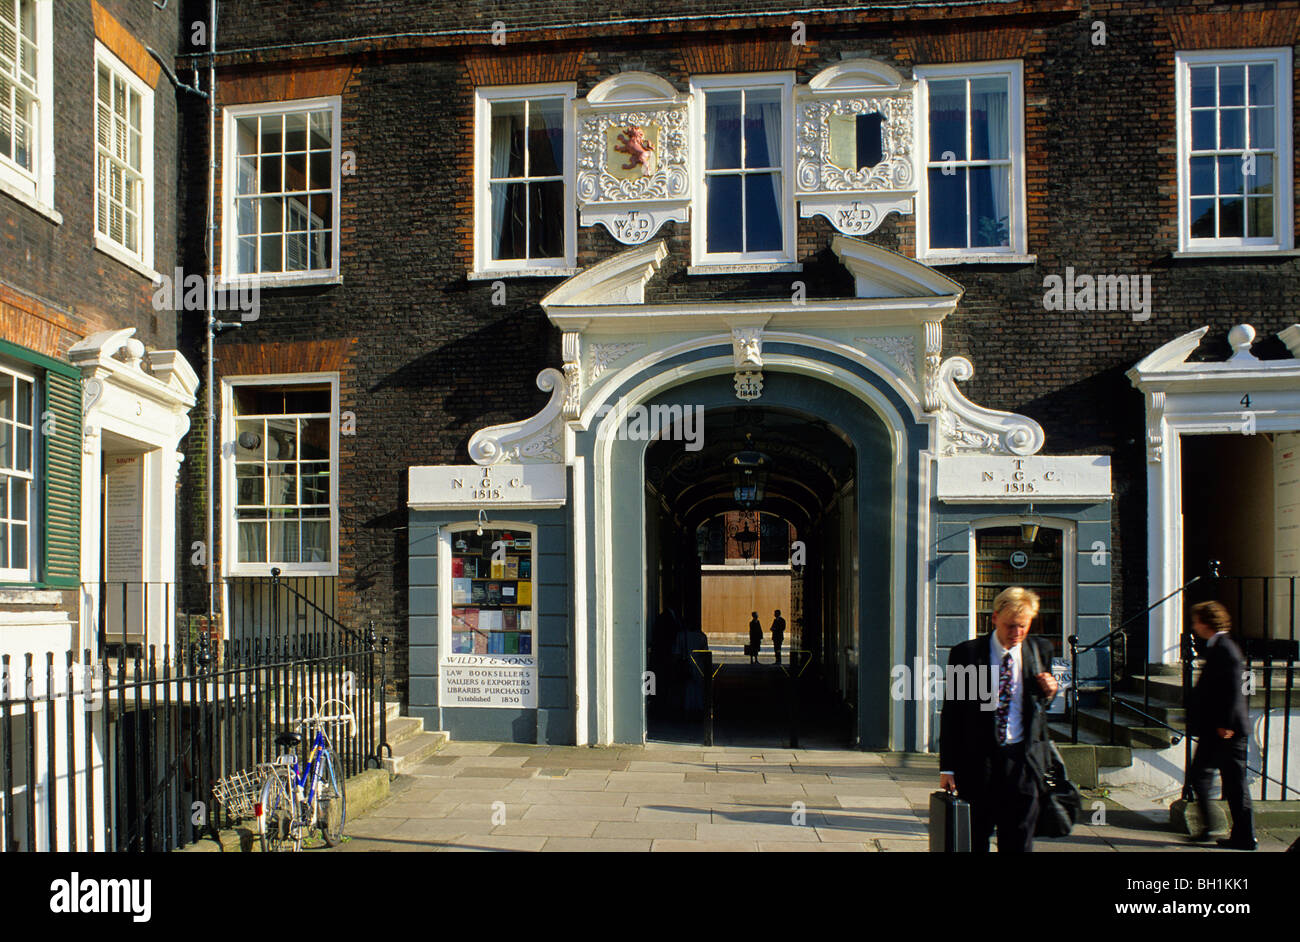 Europe, Great Britain, England, London, Inns of Court - Stock Image